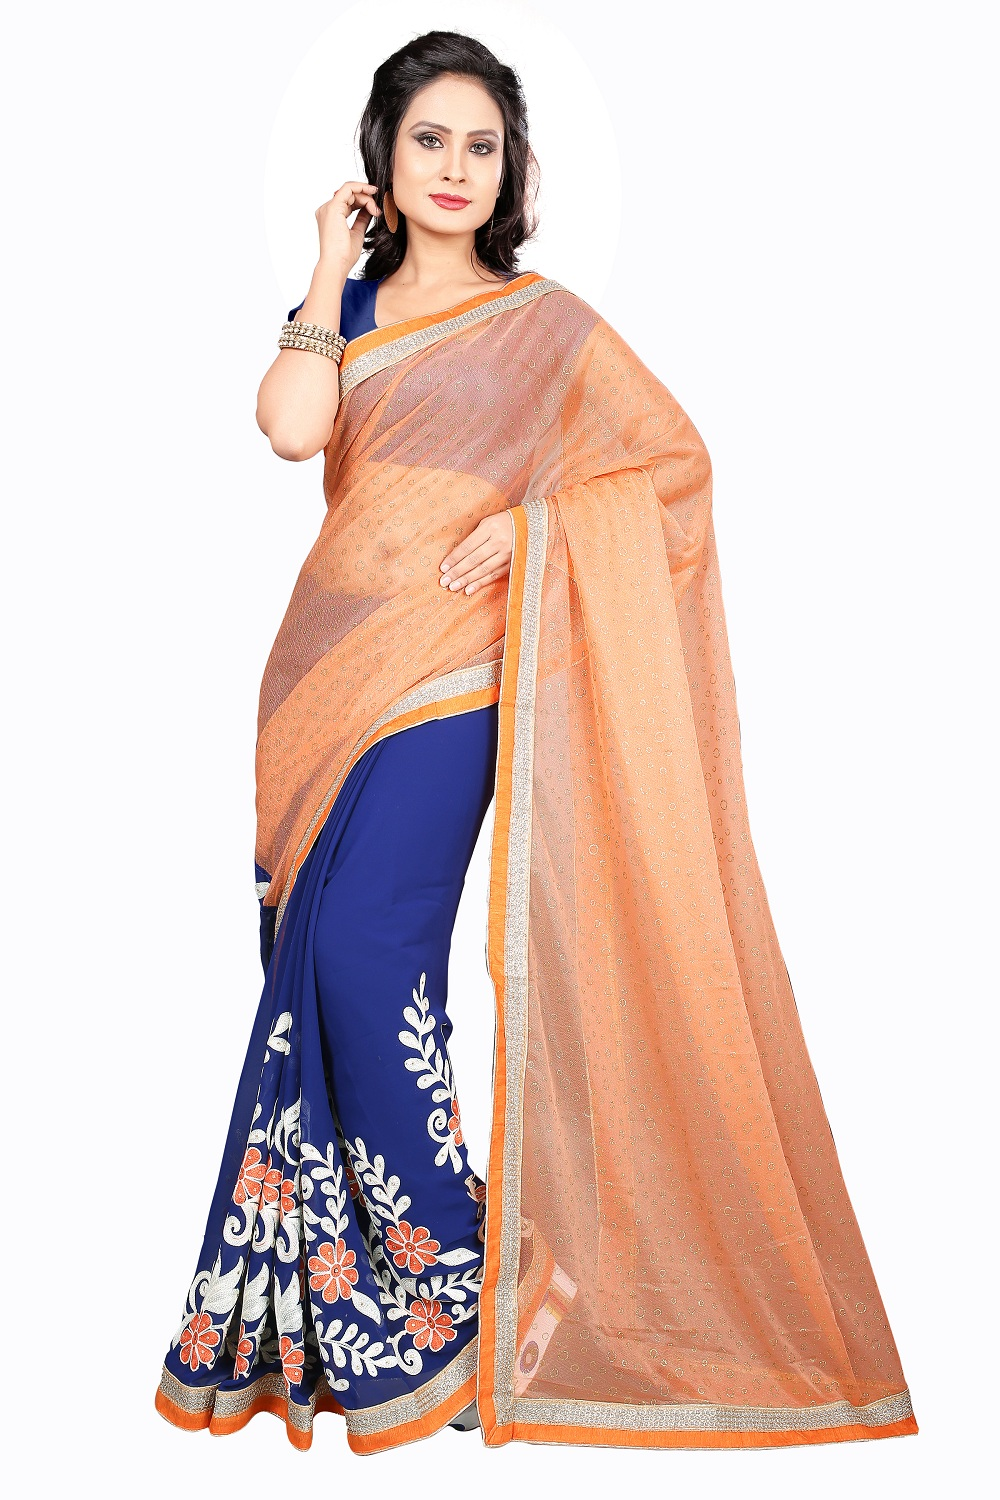 uniqueclub Unique Fashion Club New Designer Orange Colore Chain Stitch Embroidered Work Saree With Unstiched Blouse